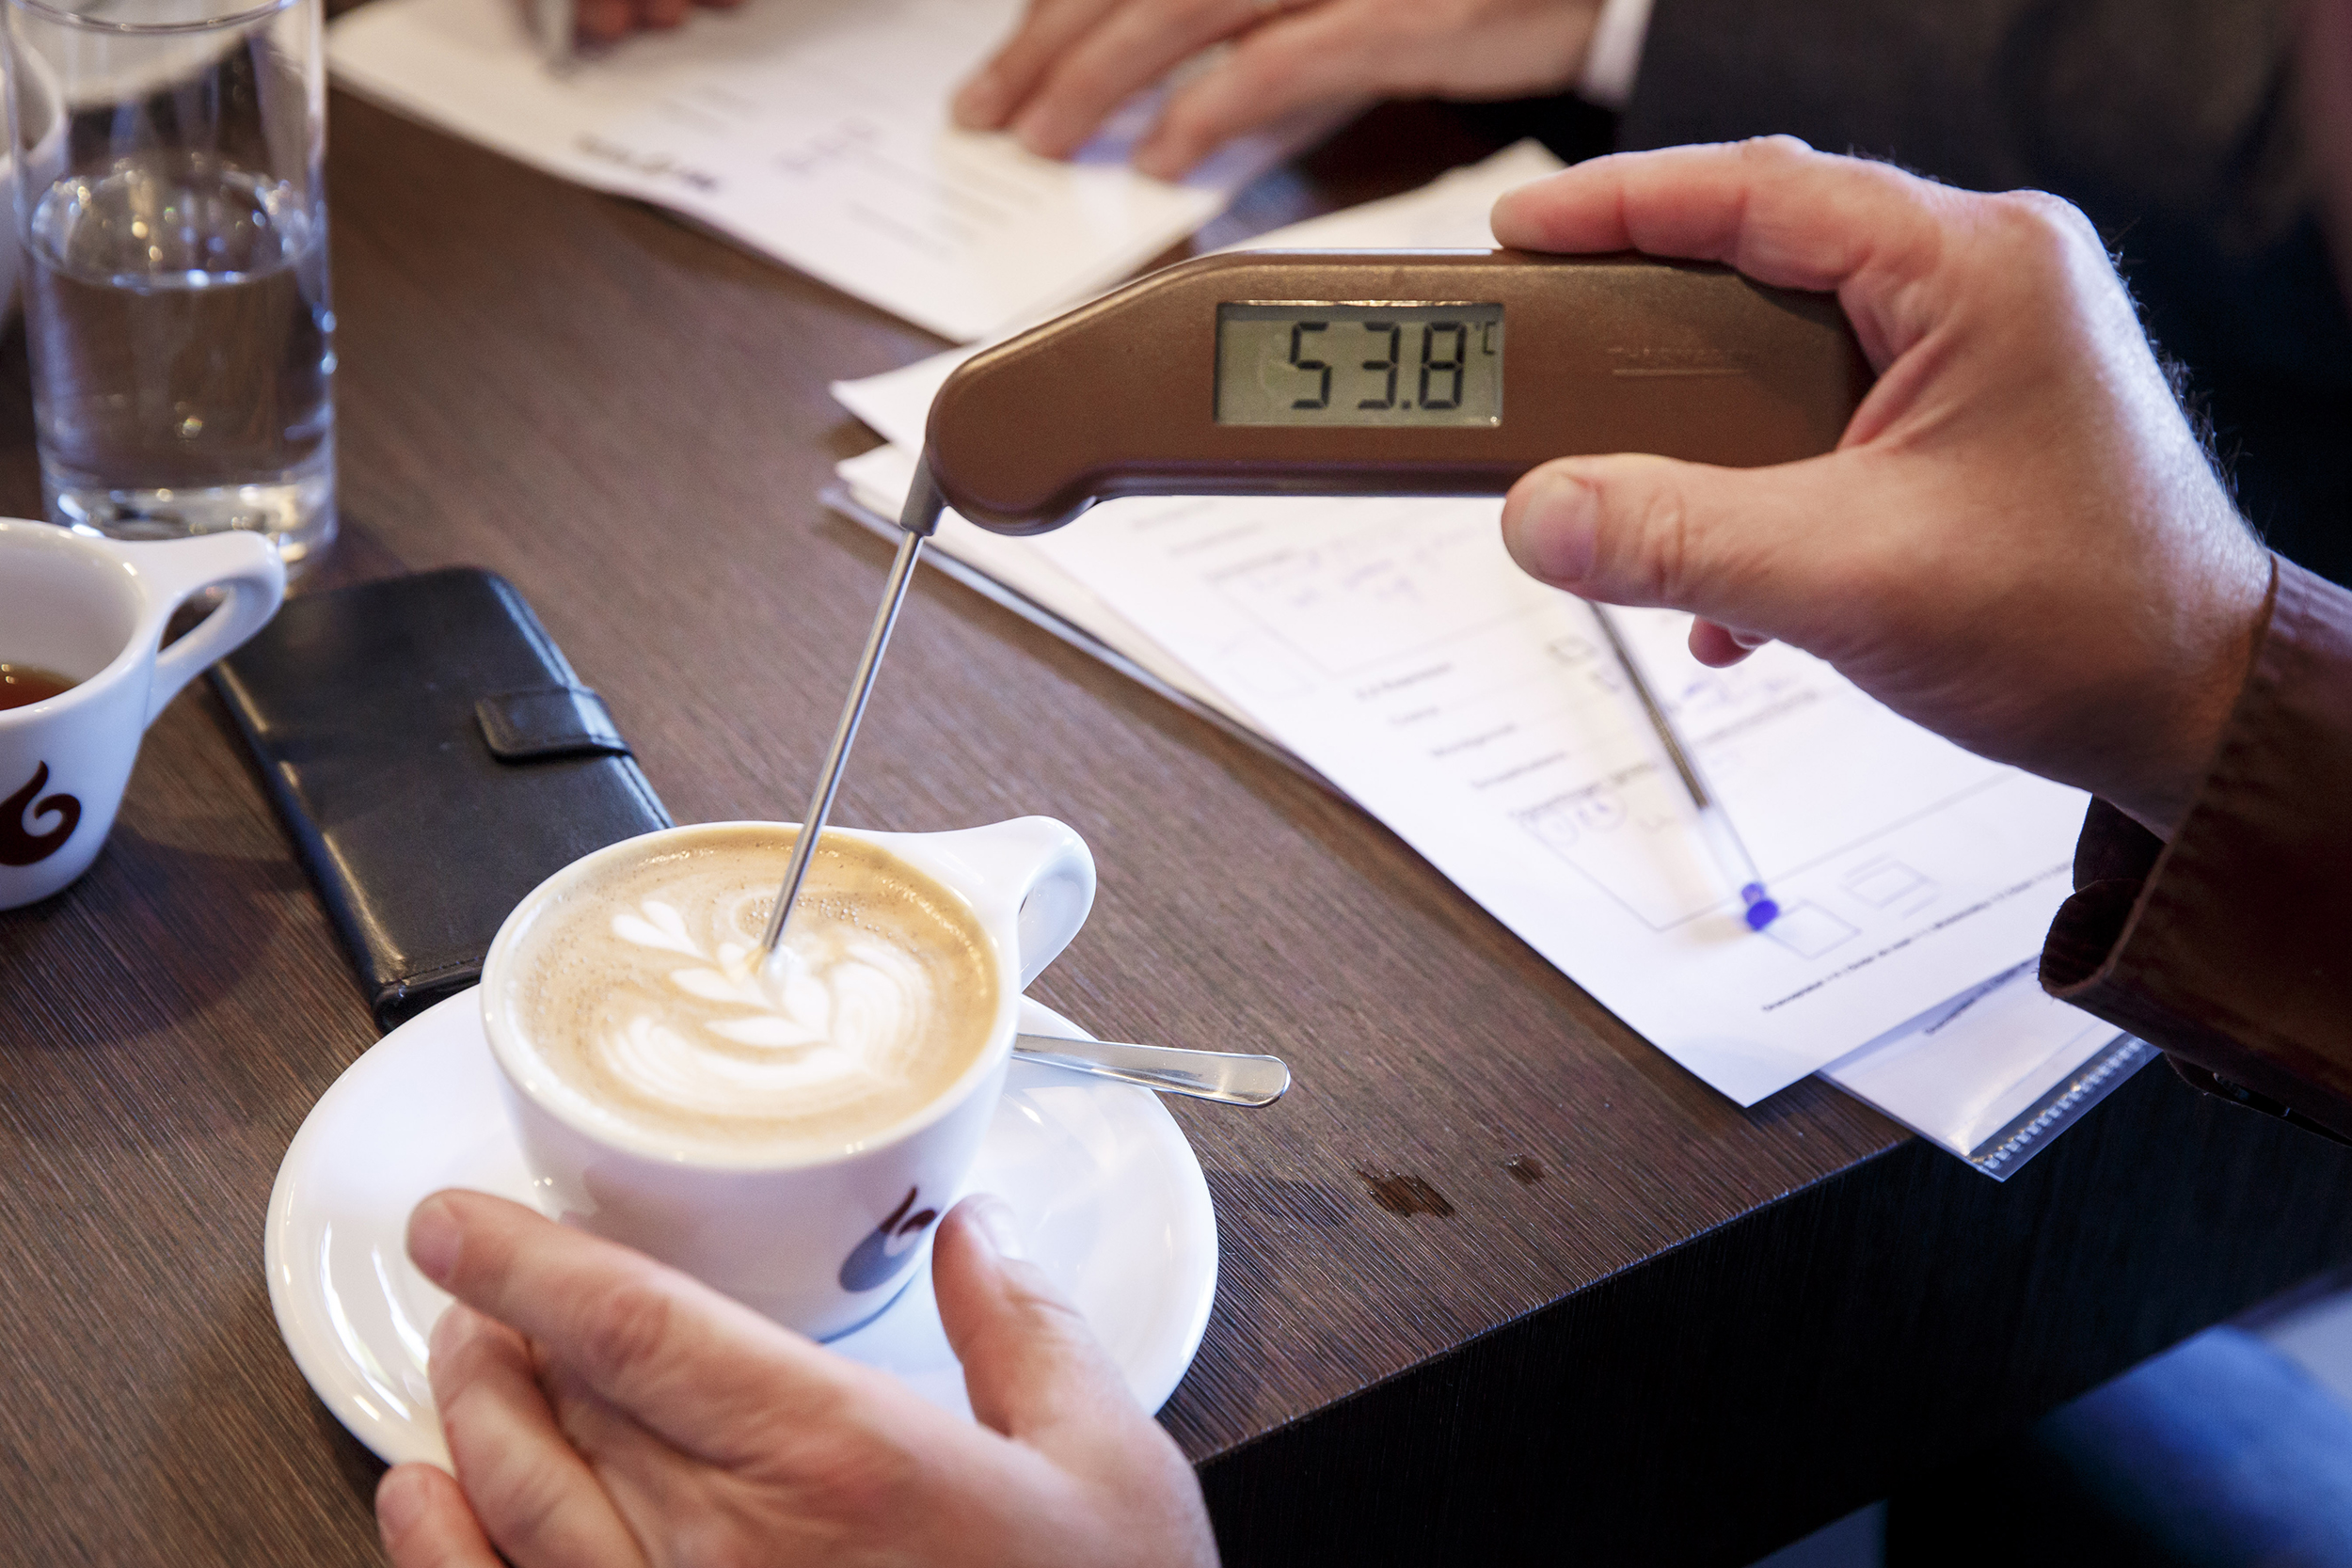 koffie cappuccino latte art thermometer temperatuur